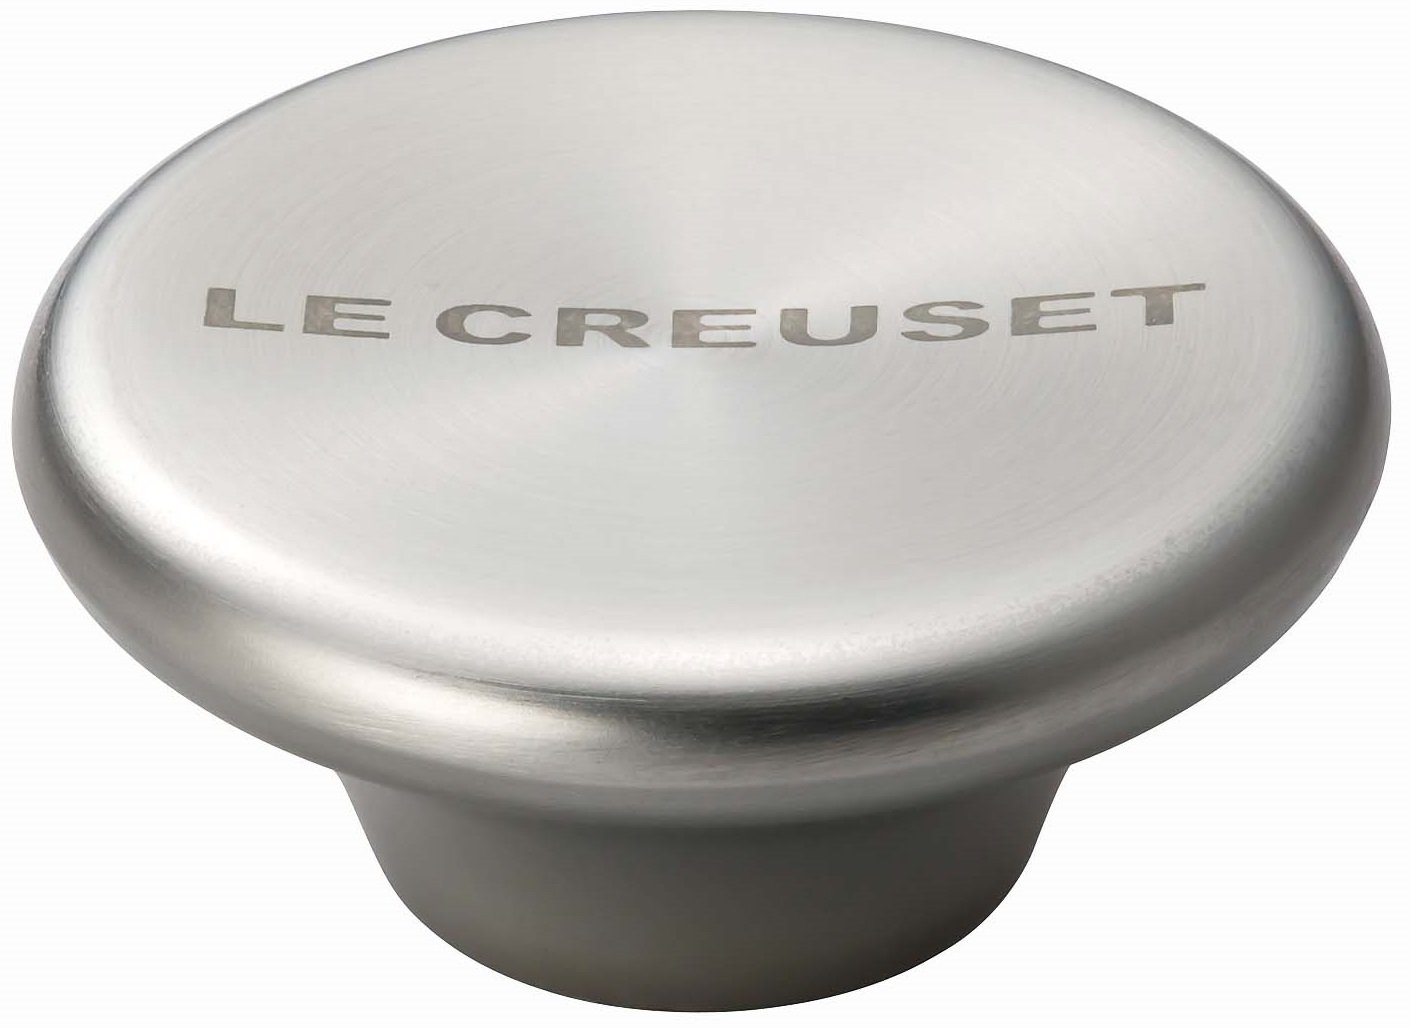 Le Creuset Stainless Steel Medium Replacement Knob - L9404-50